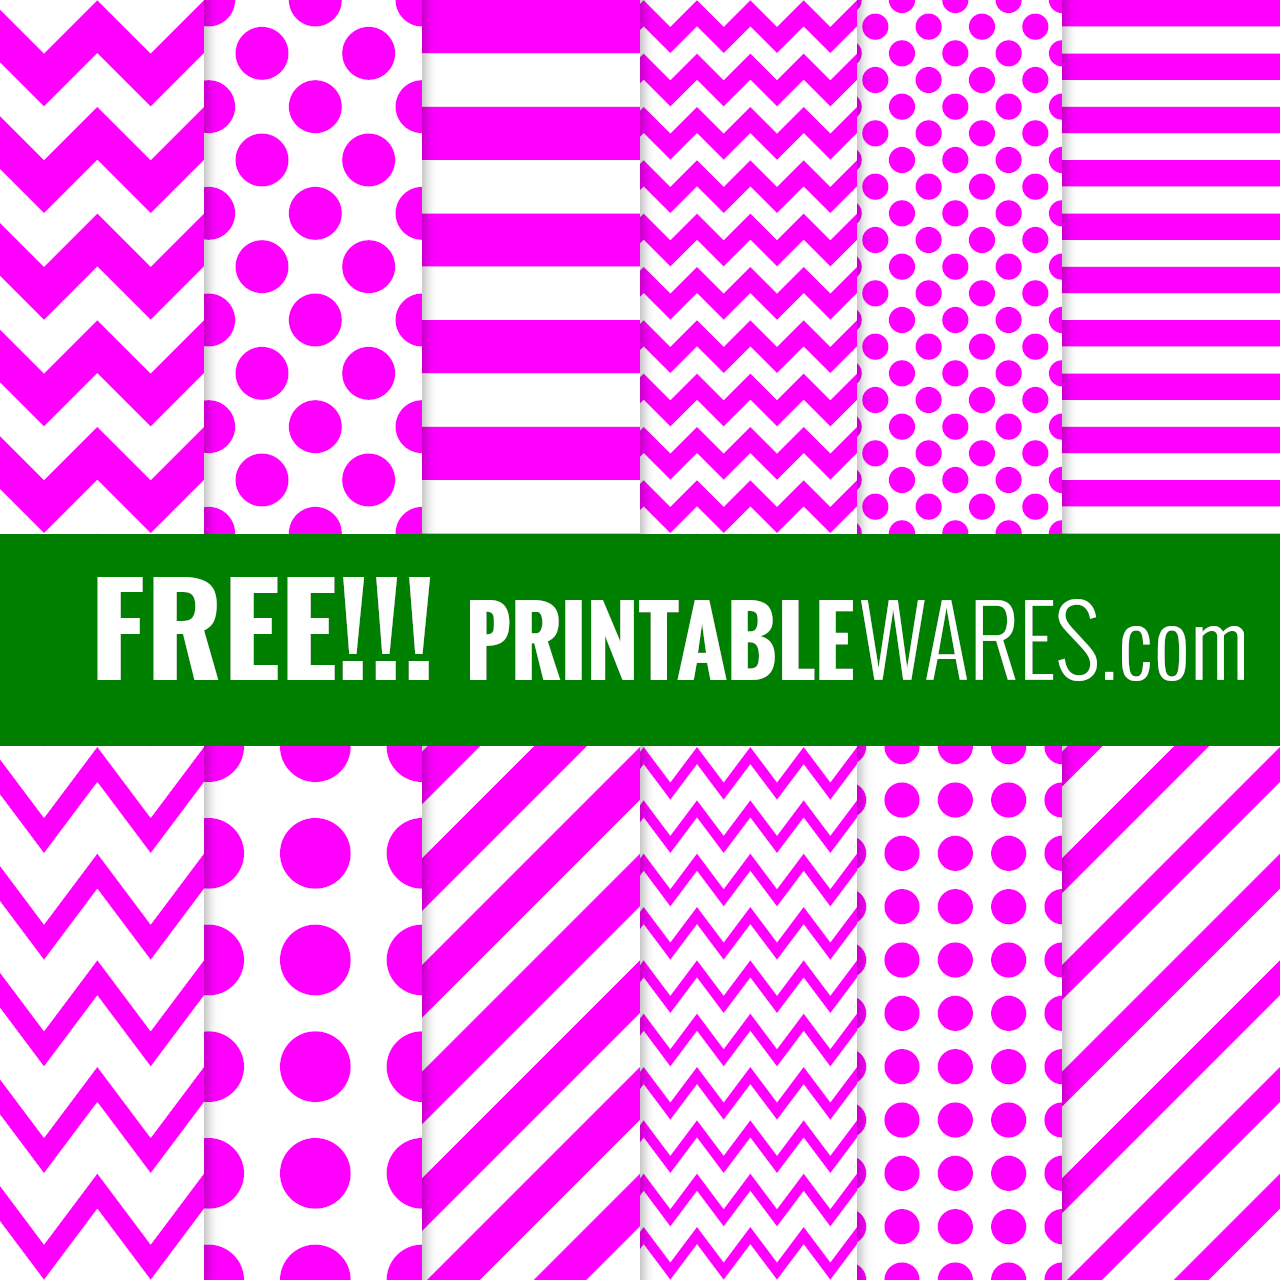 Hot Pink Scrapbook Papers Free